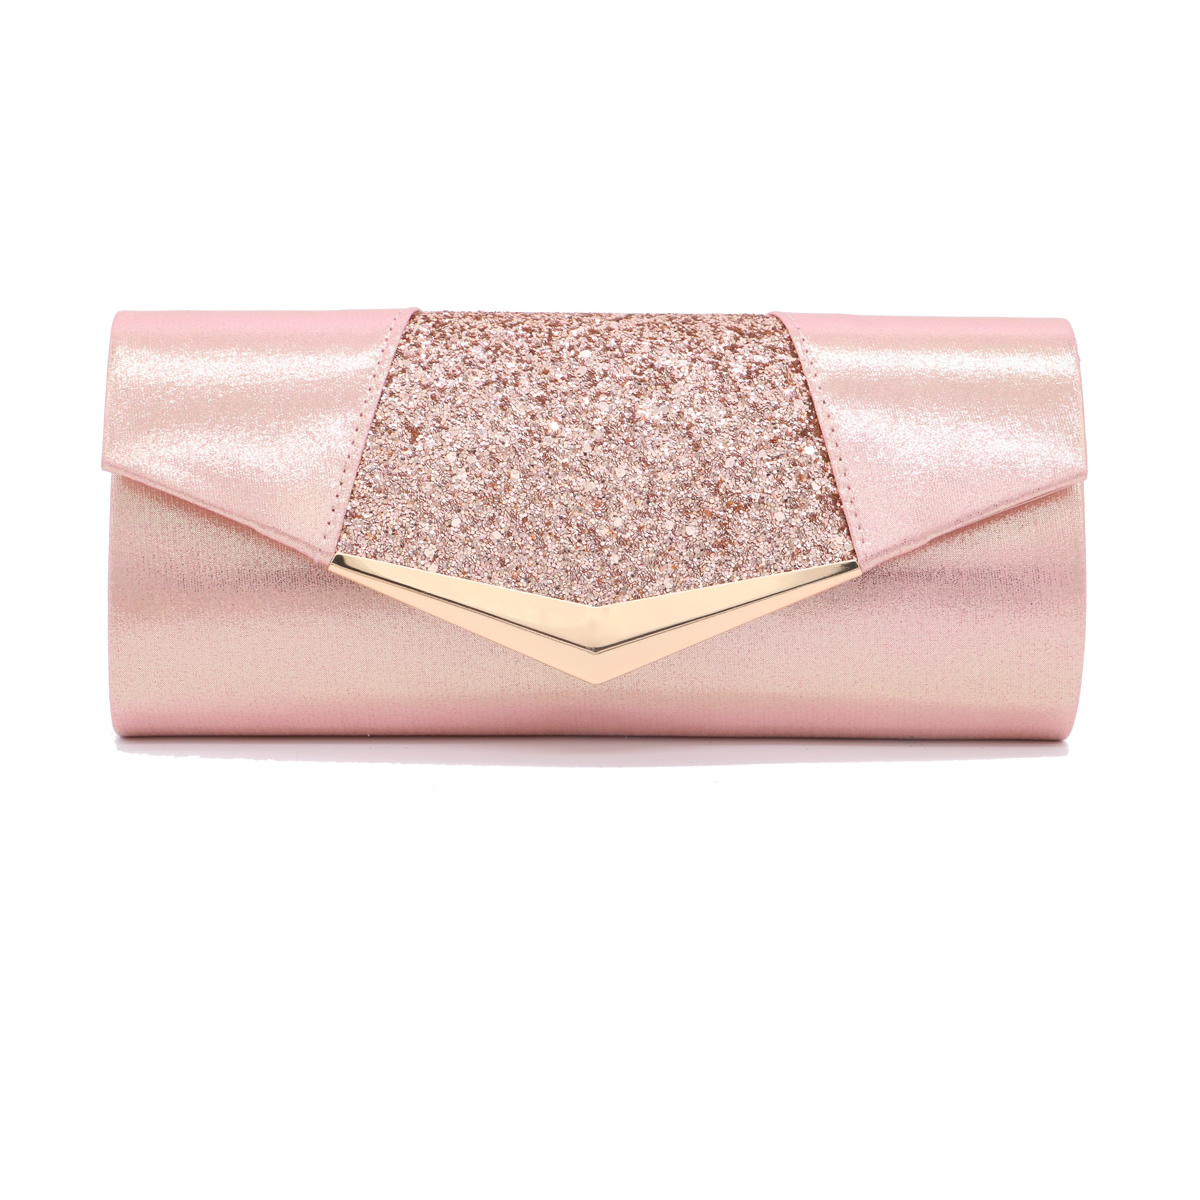 Crystal Sequin Evening Clutch Bags For Women 2019 Party Wedding Clutches Purse Female Pink Women Bags Pochette Mariage Sac Femme(China)